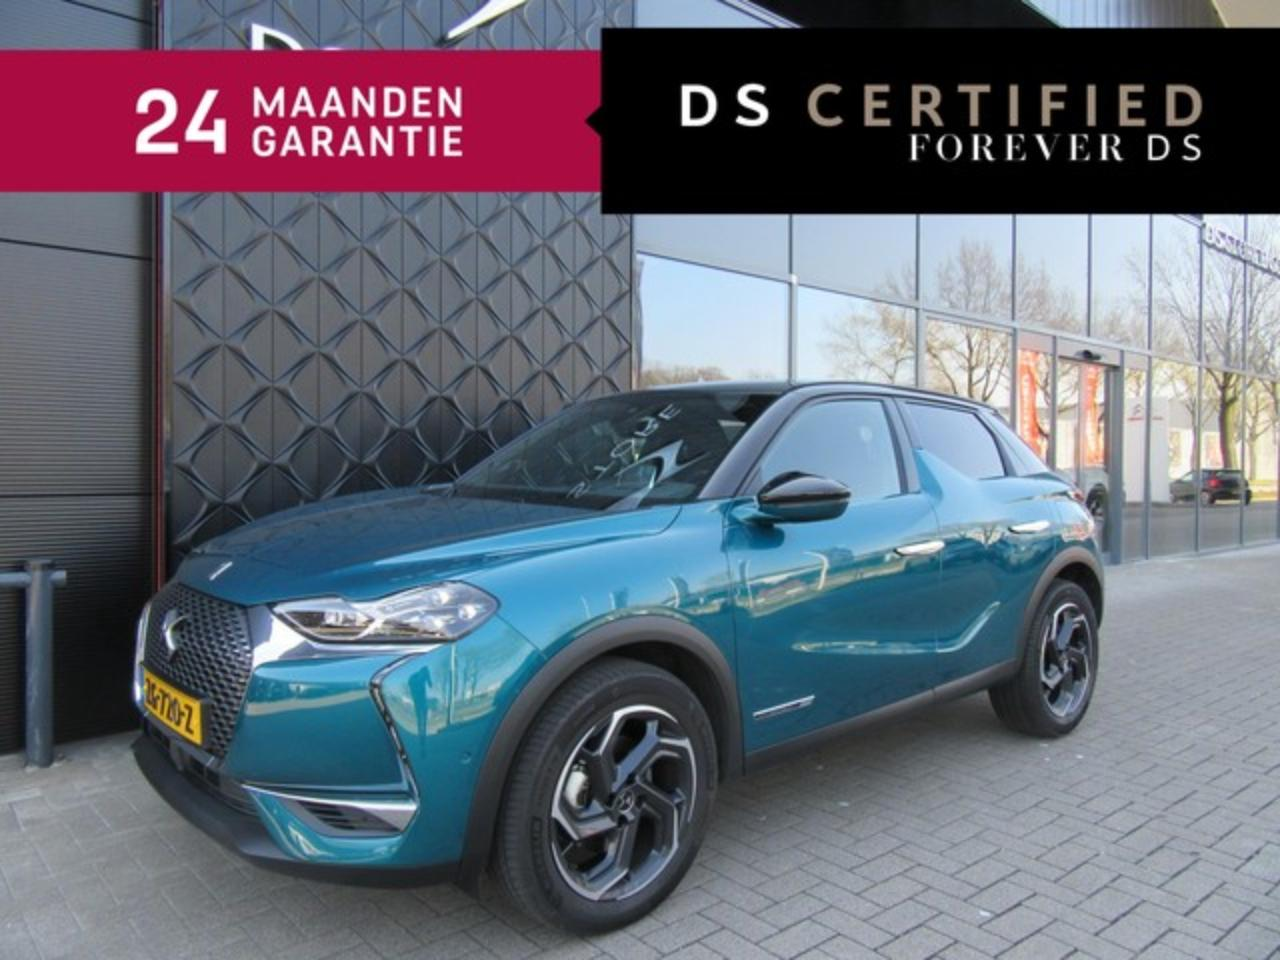 Ds DS 3 Crossback PureTech 130 Grand Chic Automatic OPERA Focal